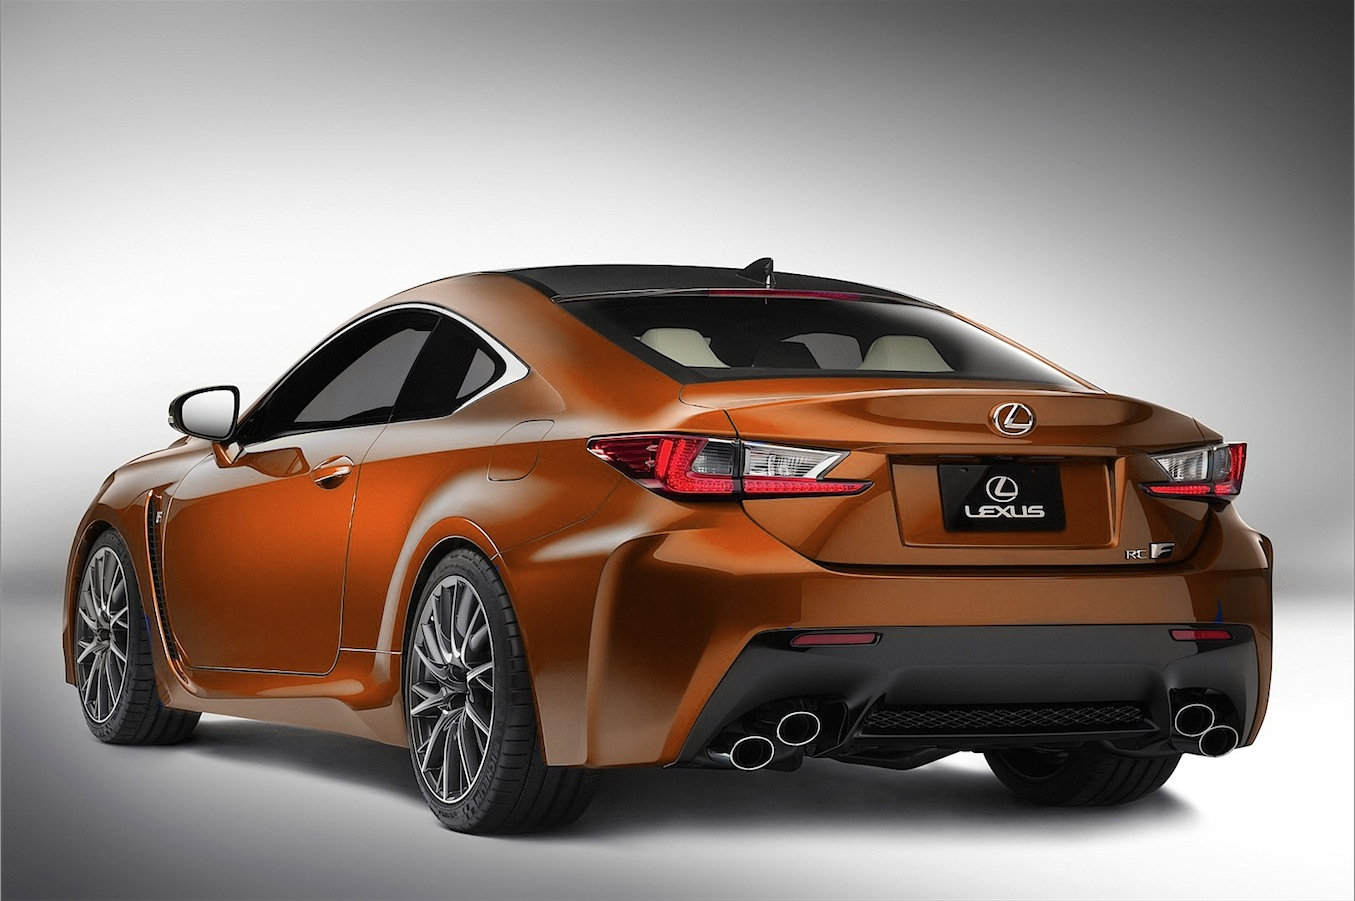 Uber Black Car Models >> Here's How the Lexus RC F Will Look in New Orange - autoevolution